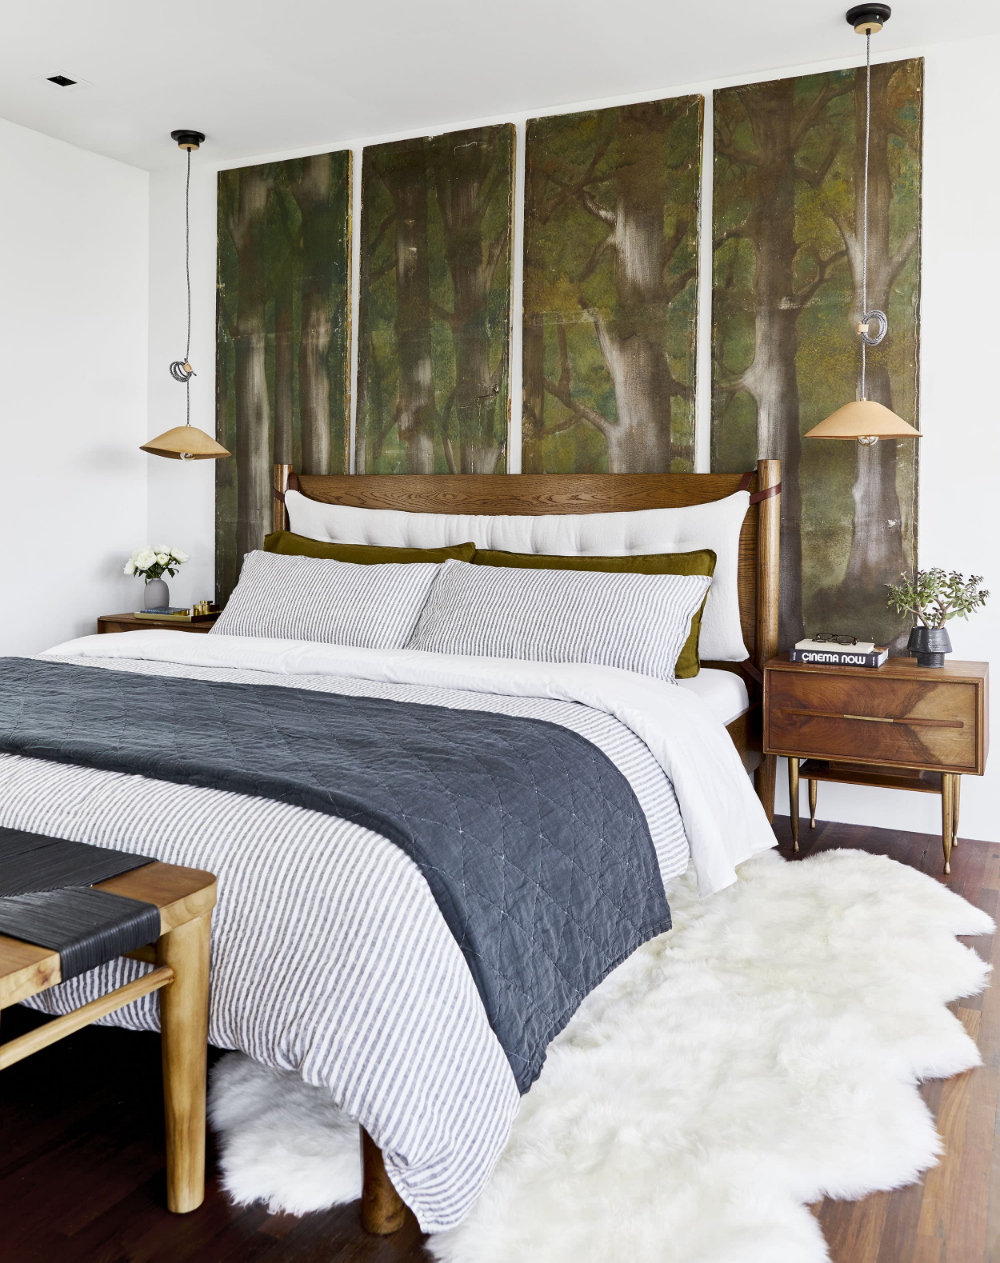 5 Steps To Get A High-Impact & Organic Bedroom